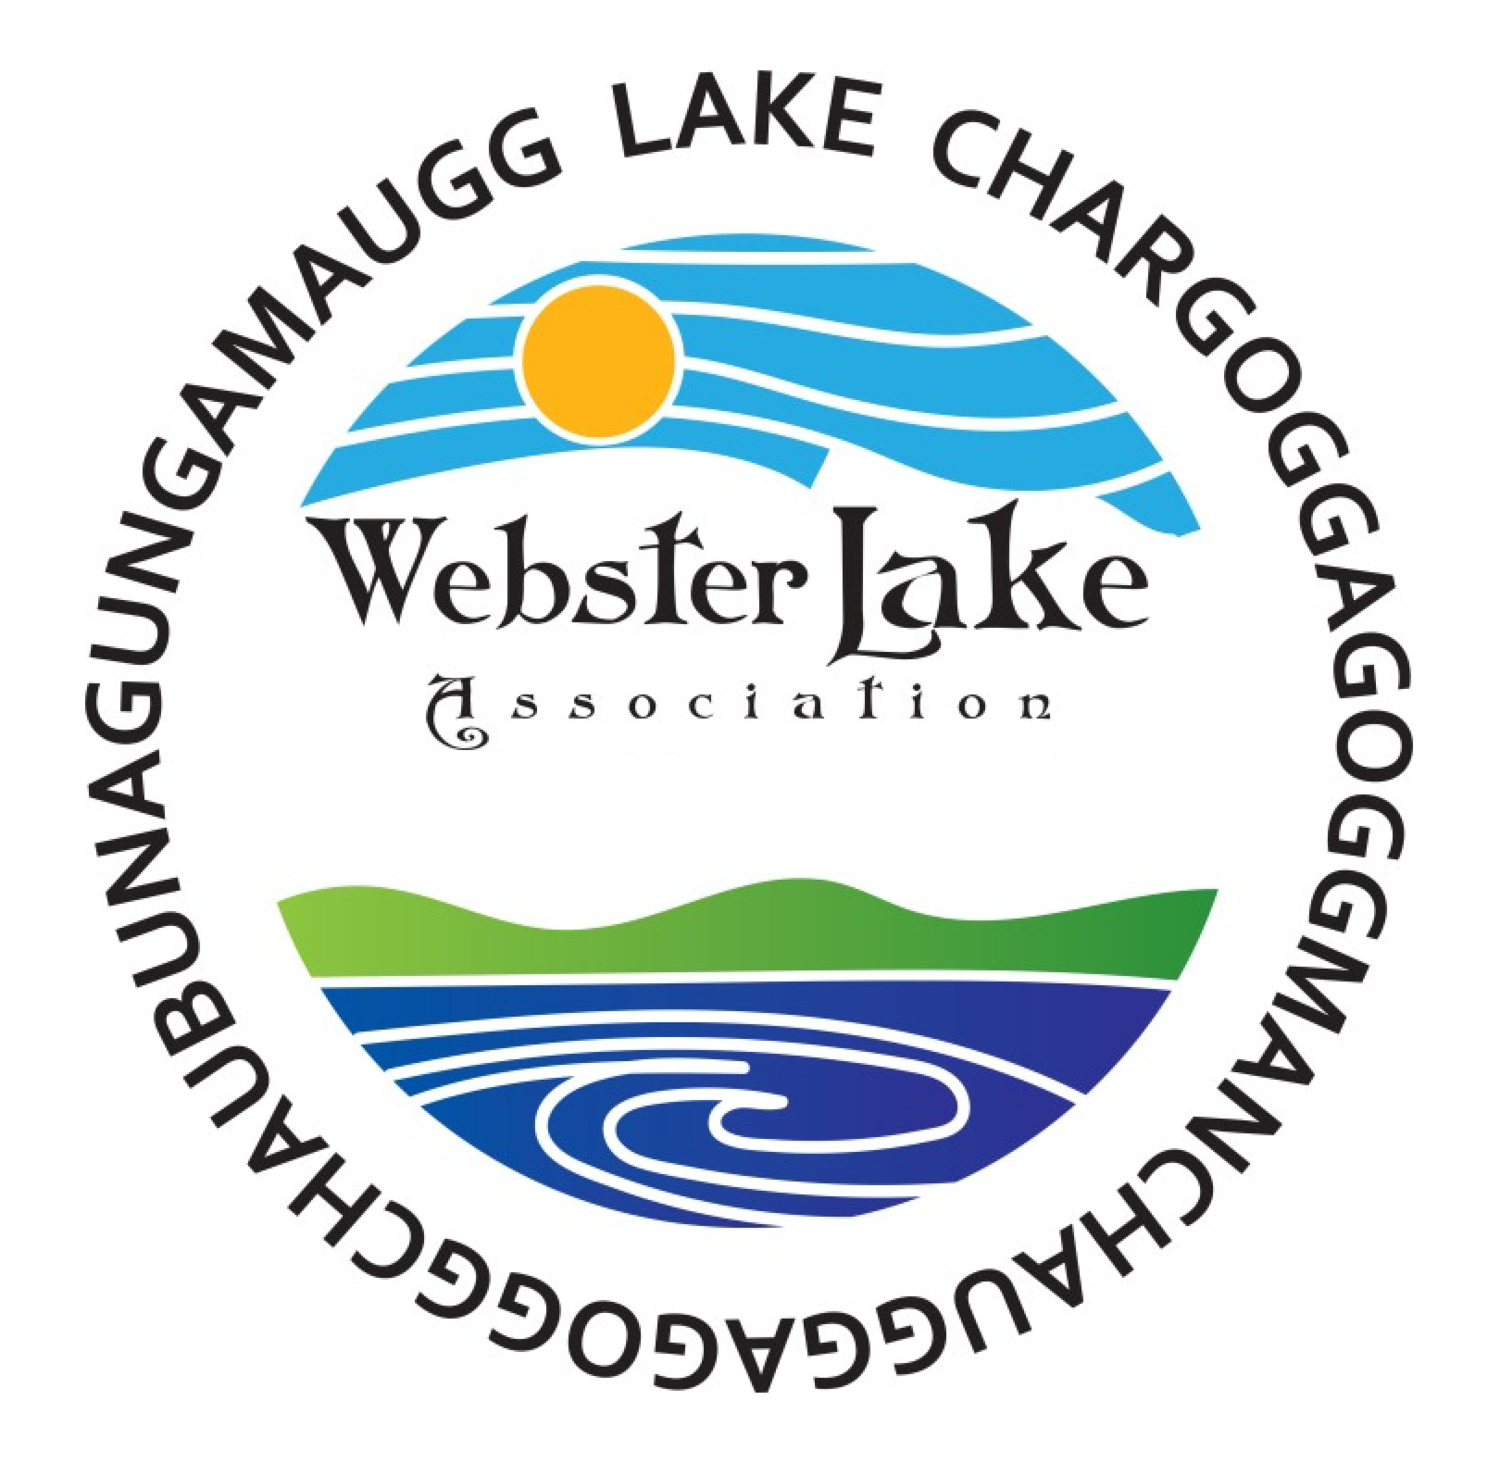 Webster Lake Association